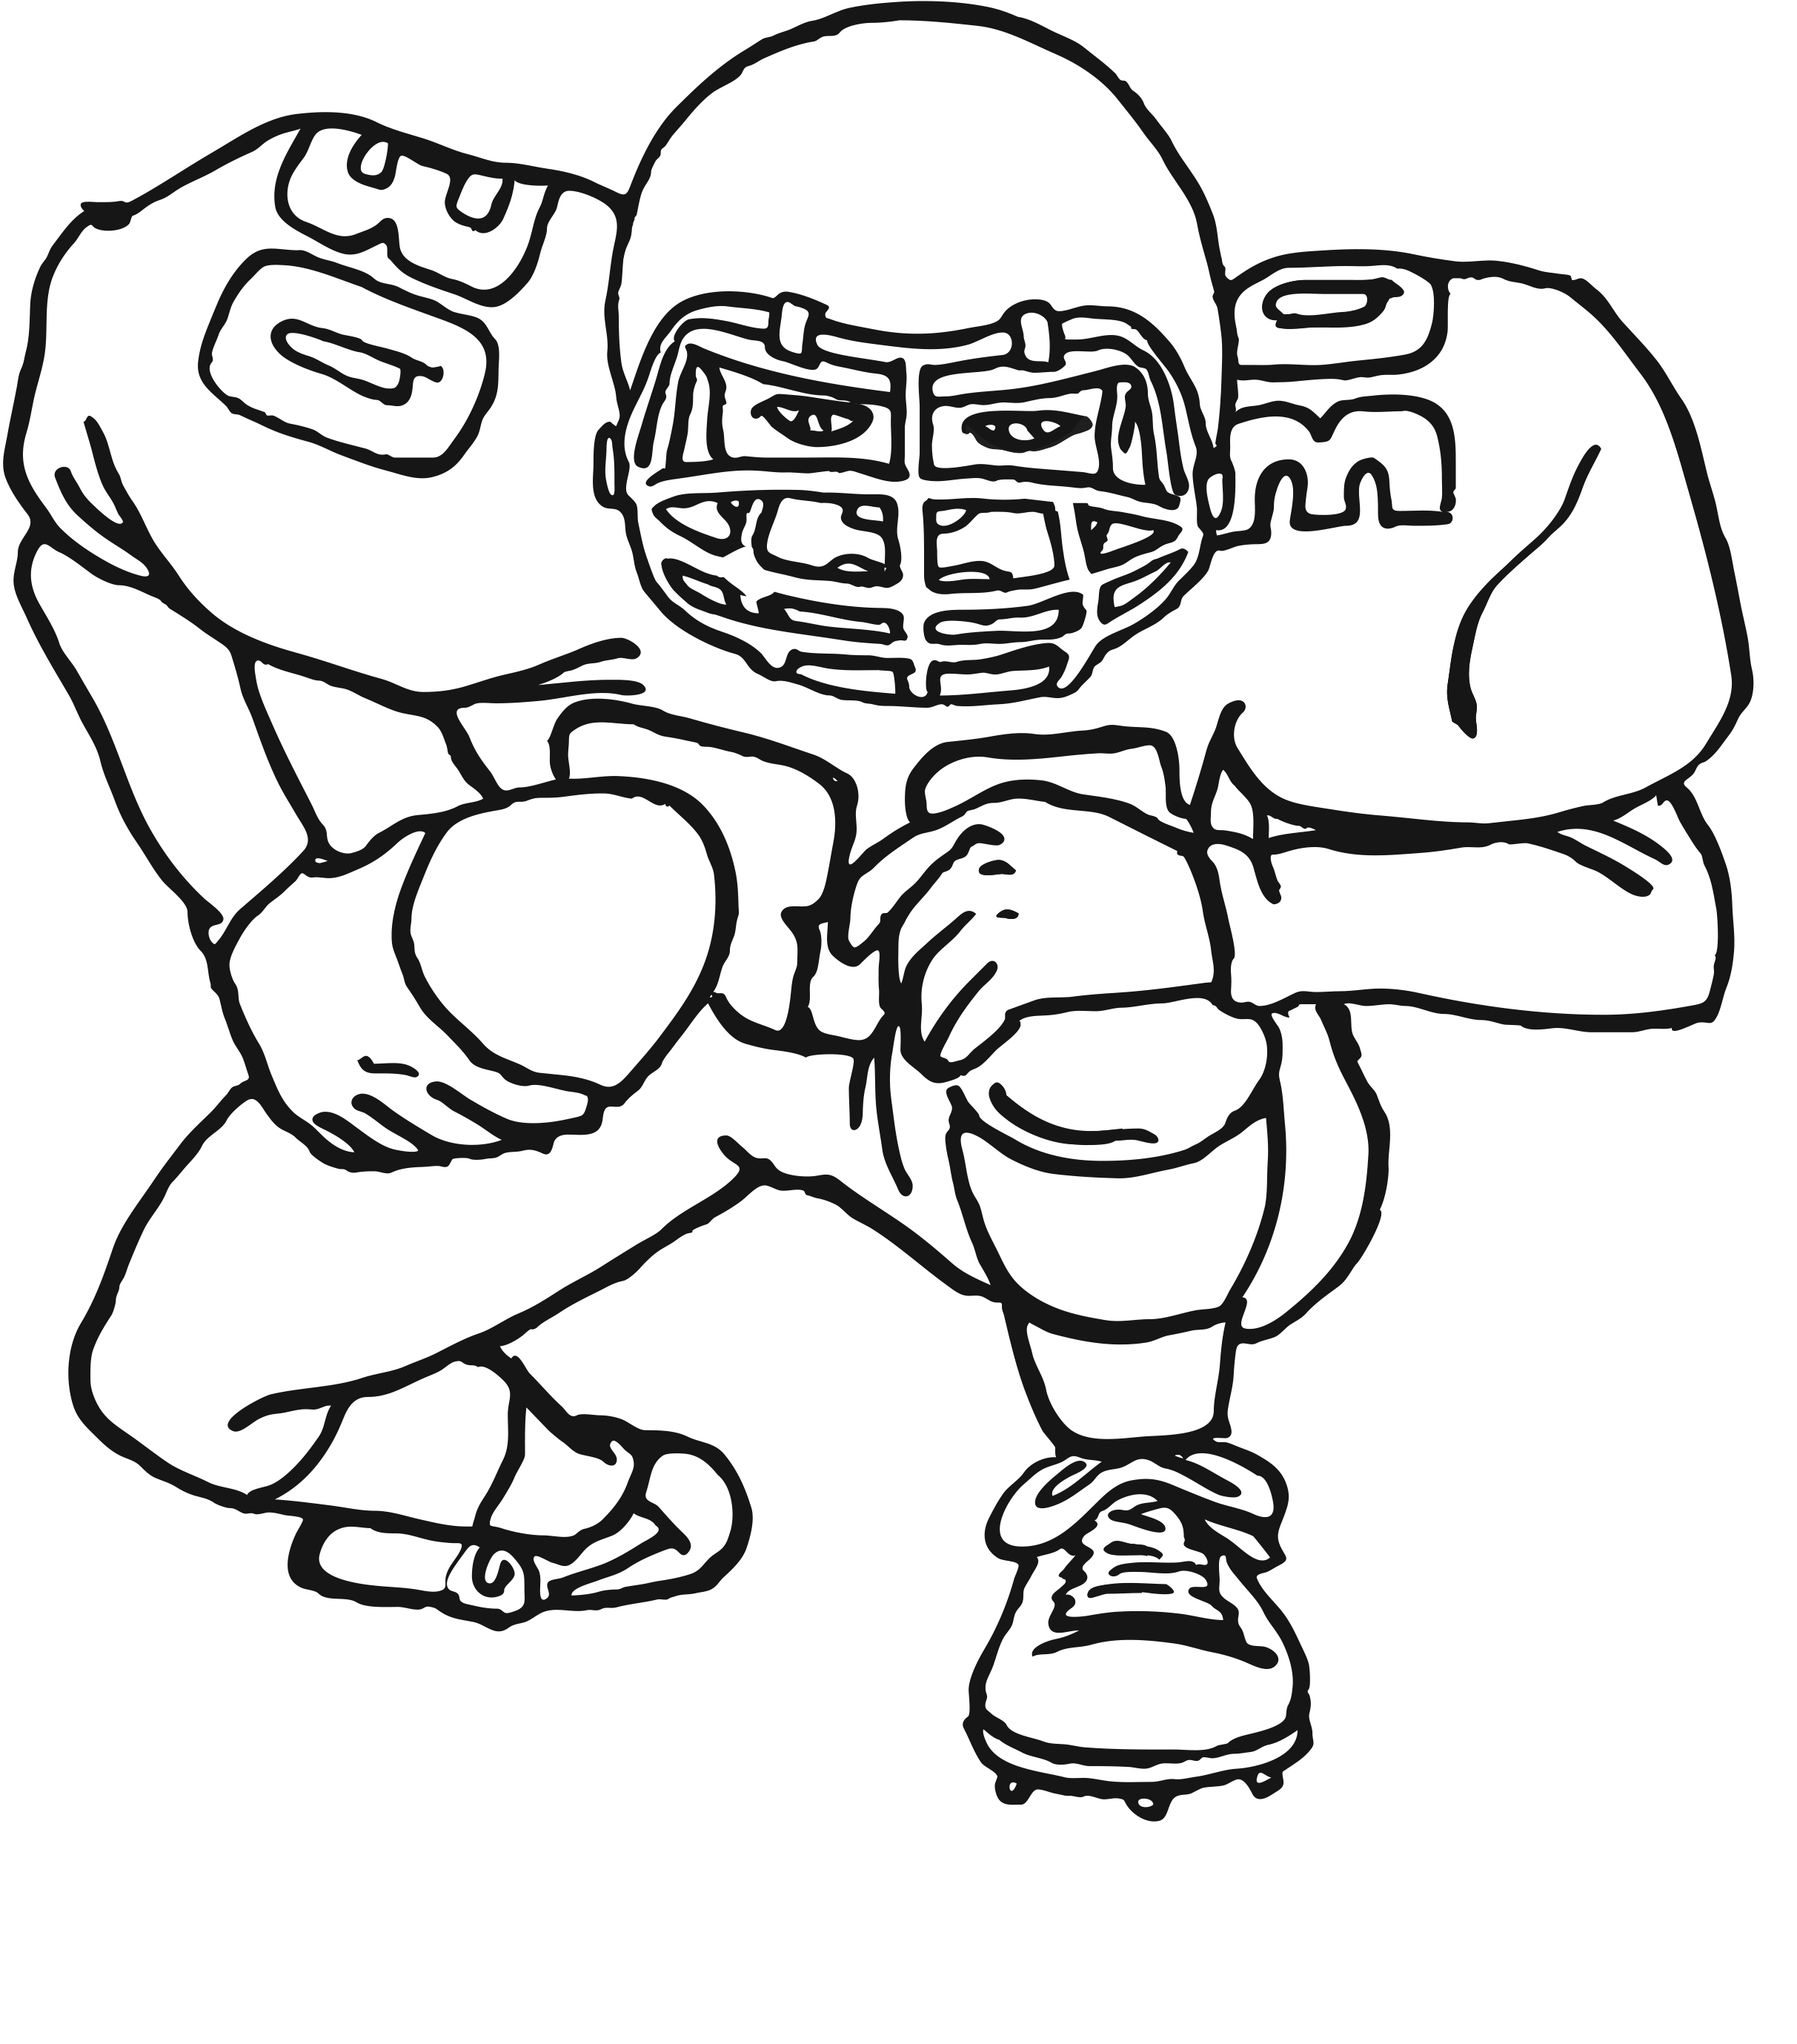 coloring pages of football players free printable football coloring pages for kids best pages players of football coloring